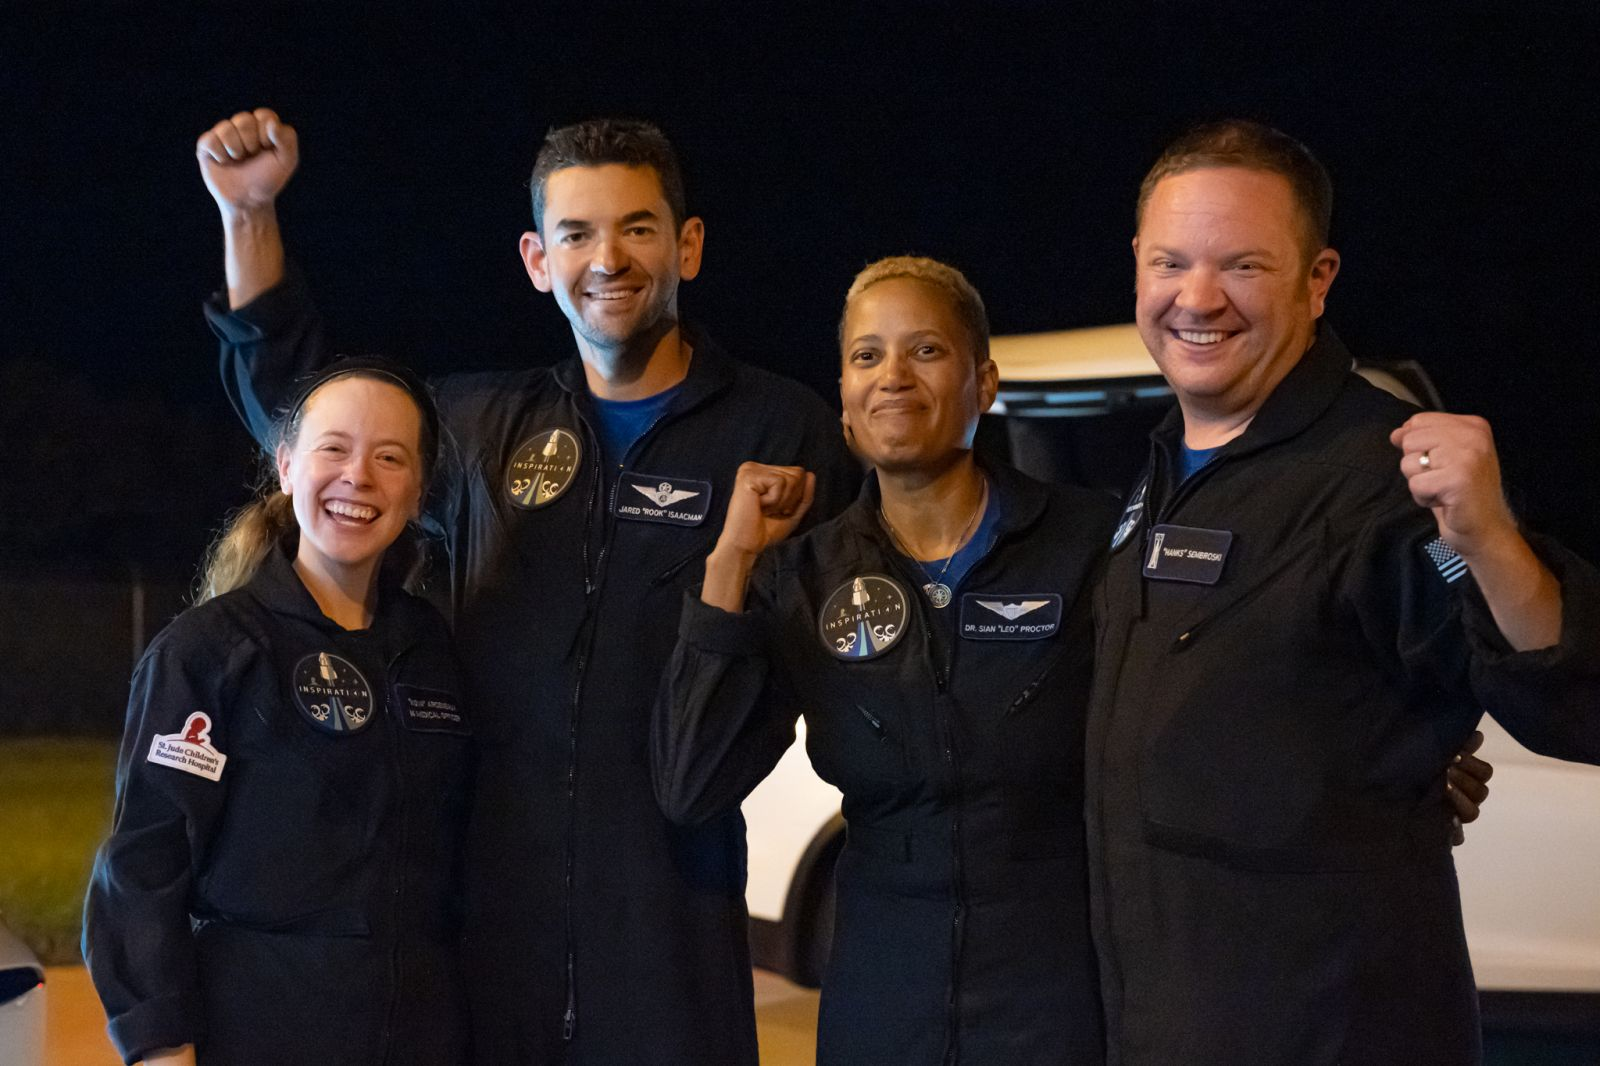 The four Inspiration4 crew members pose for a photo upon their arrival at Kennedy Space Center following their 3-day flight. Credit: Inspiration4 / John Kraus